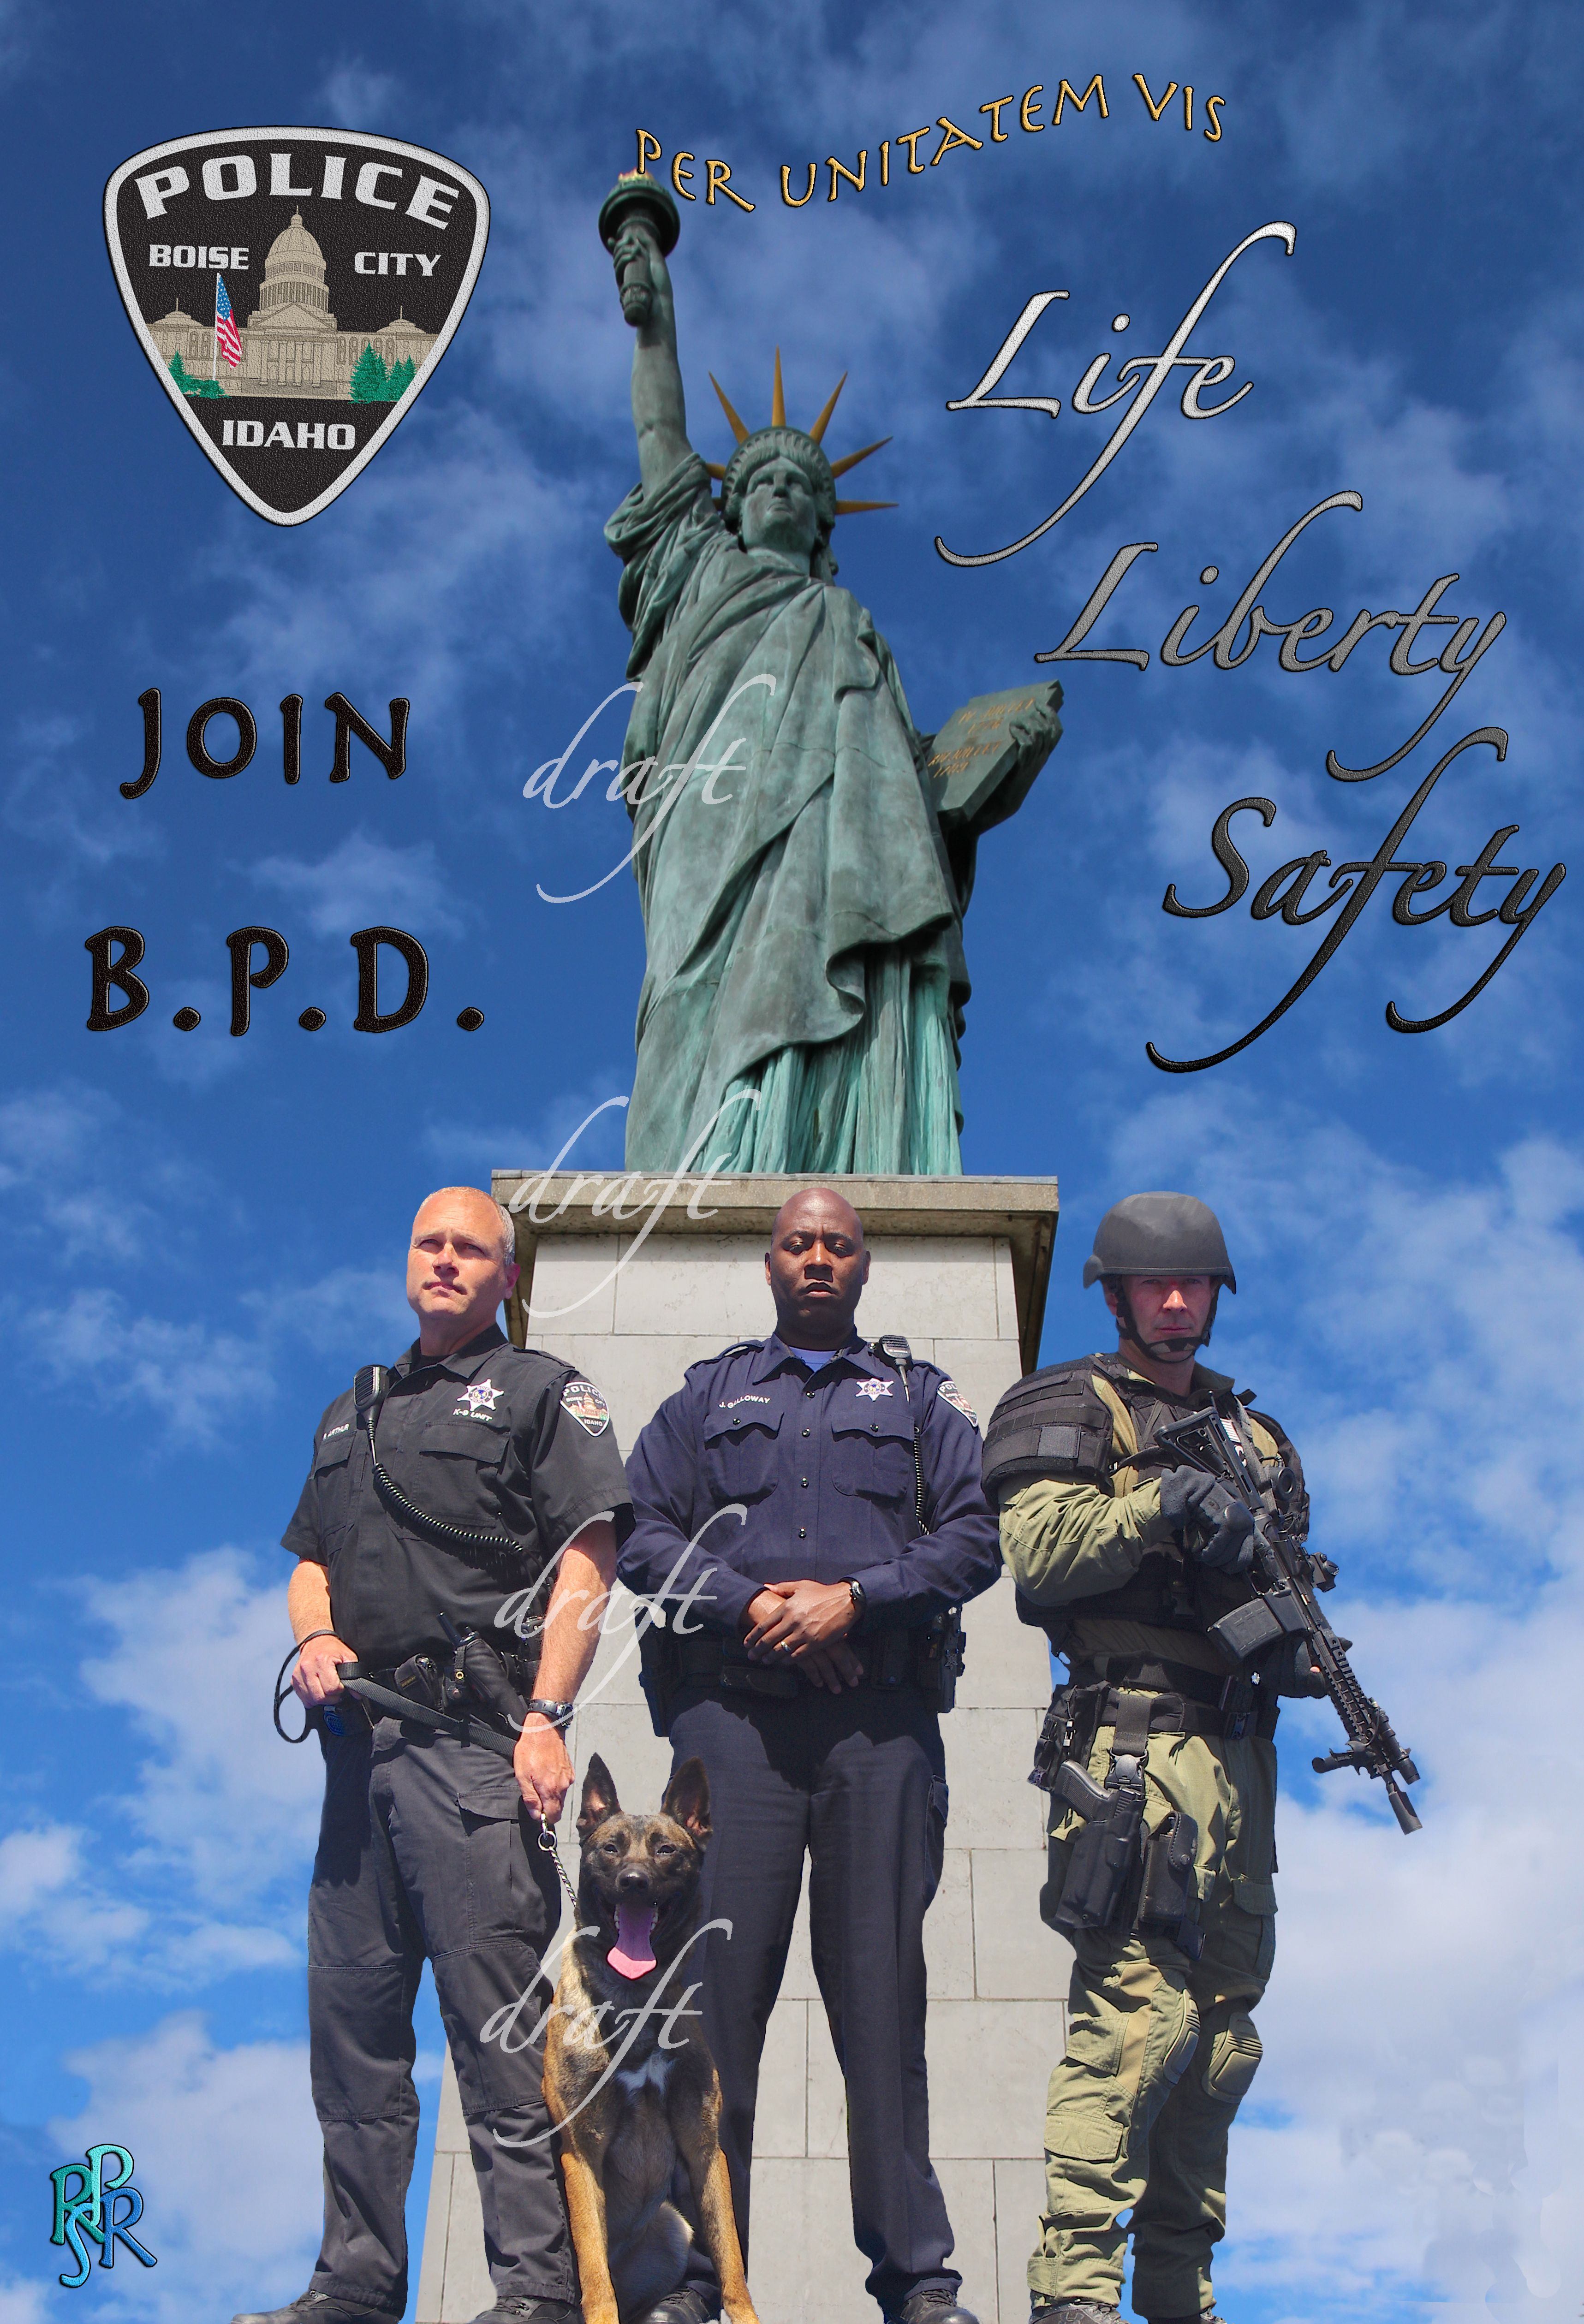 Per Unitatem Vis Stands For Through Unity Strength These Images May Not Be Reproduced Or Used Without Prior Consent Boise City Police Police Department